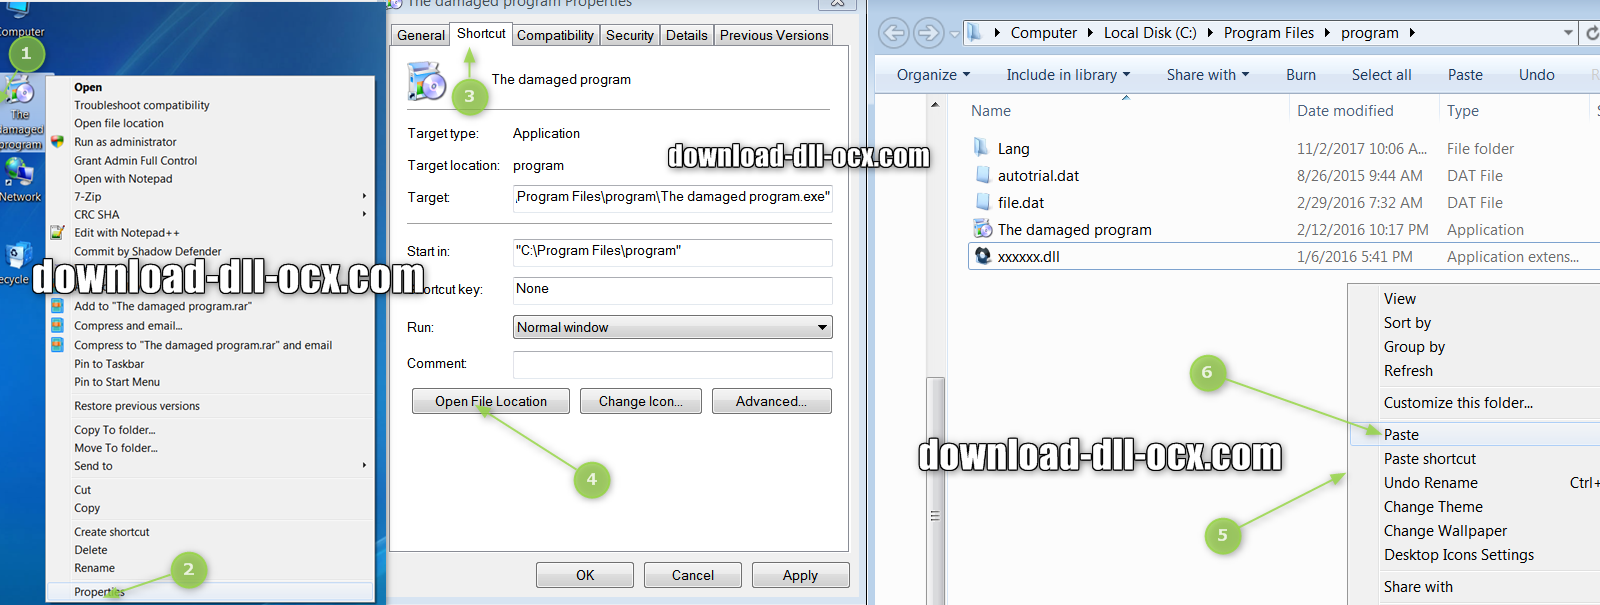 how to install xdebug-5.0-2.0.0beta1.dll file? for fix missing